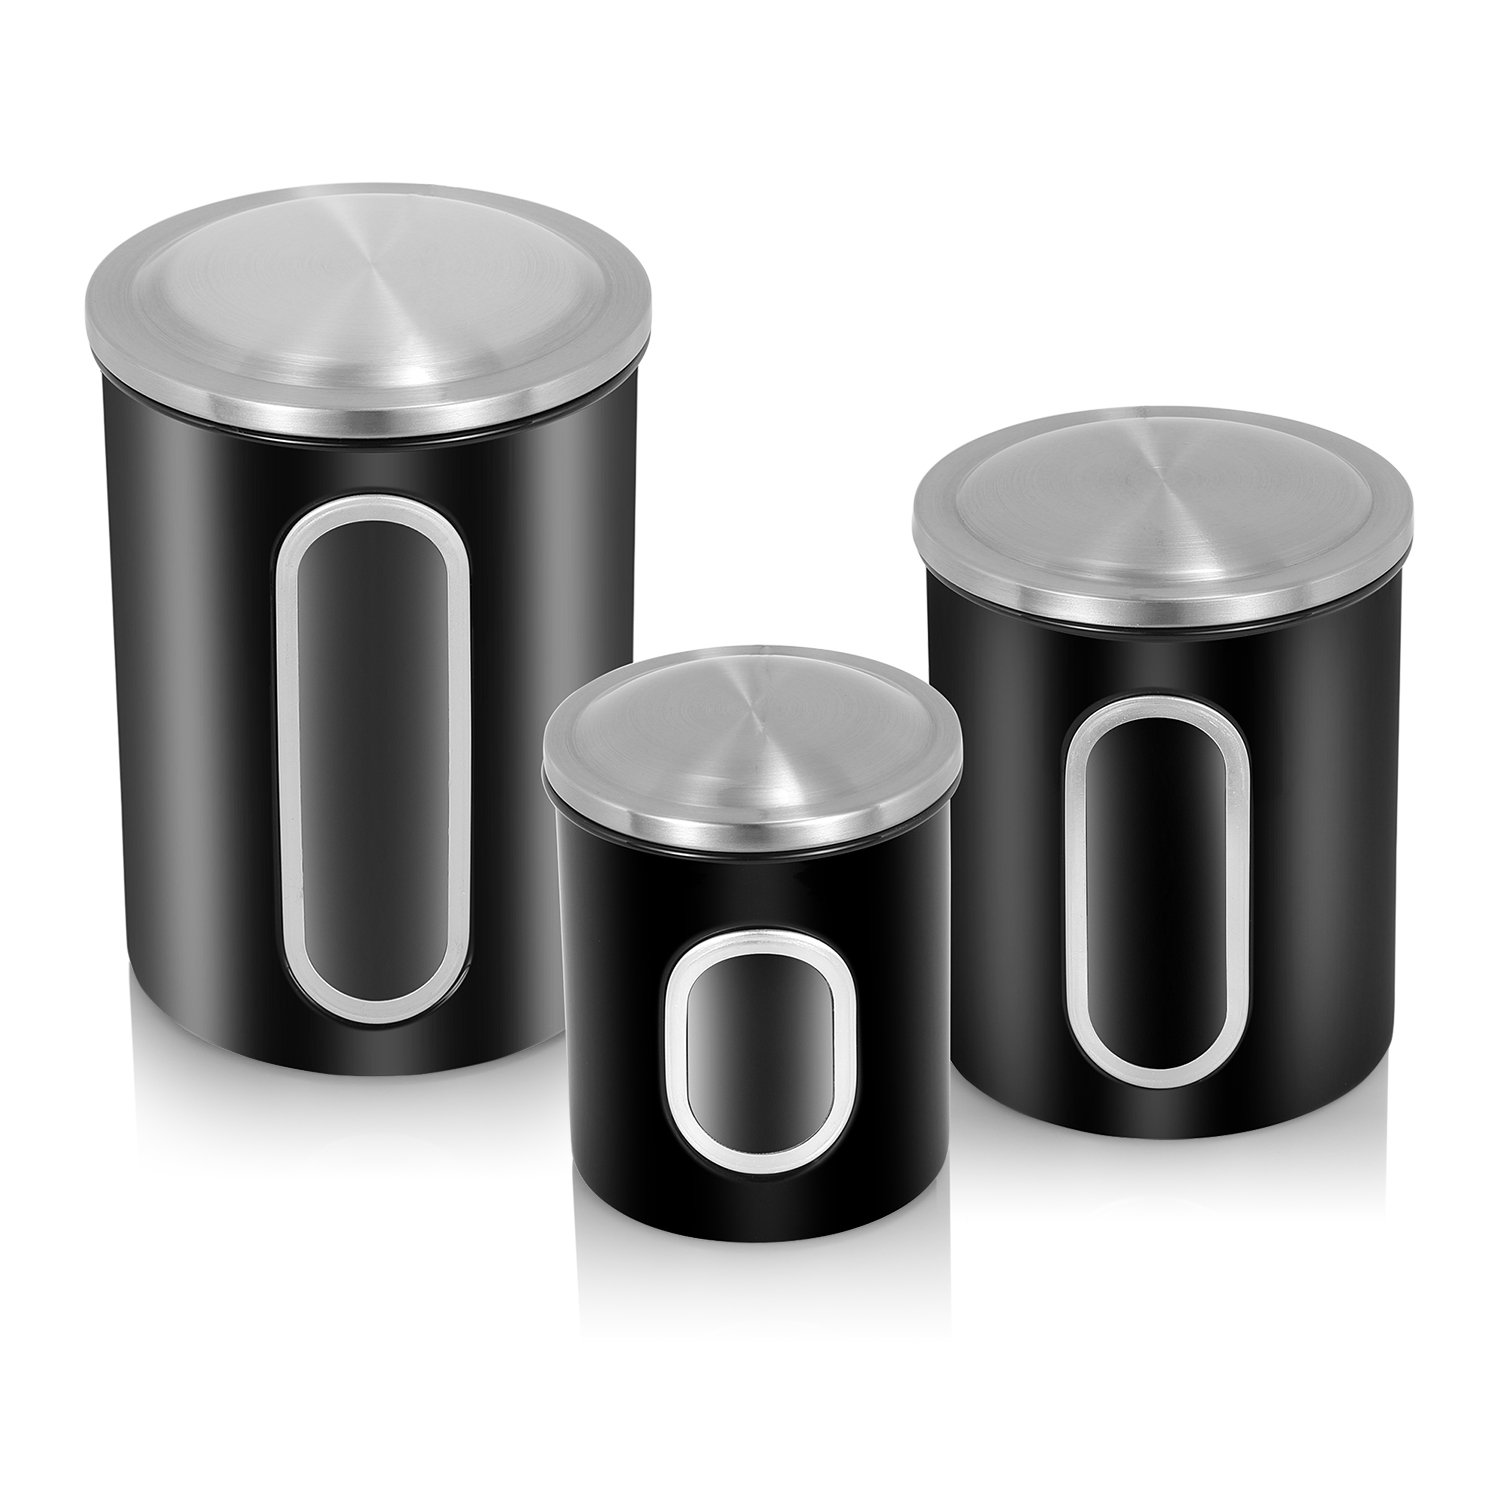 Kitchen Canisters, Food Storage Canisters Set with Anti-Fingerprint Lid and Visible Window, Stainless Steel Kitchen Canister Set of 3 (Black)